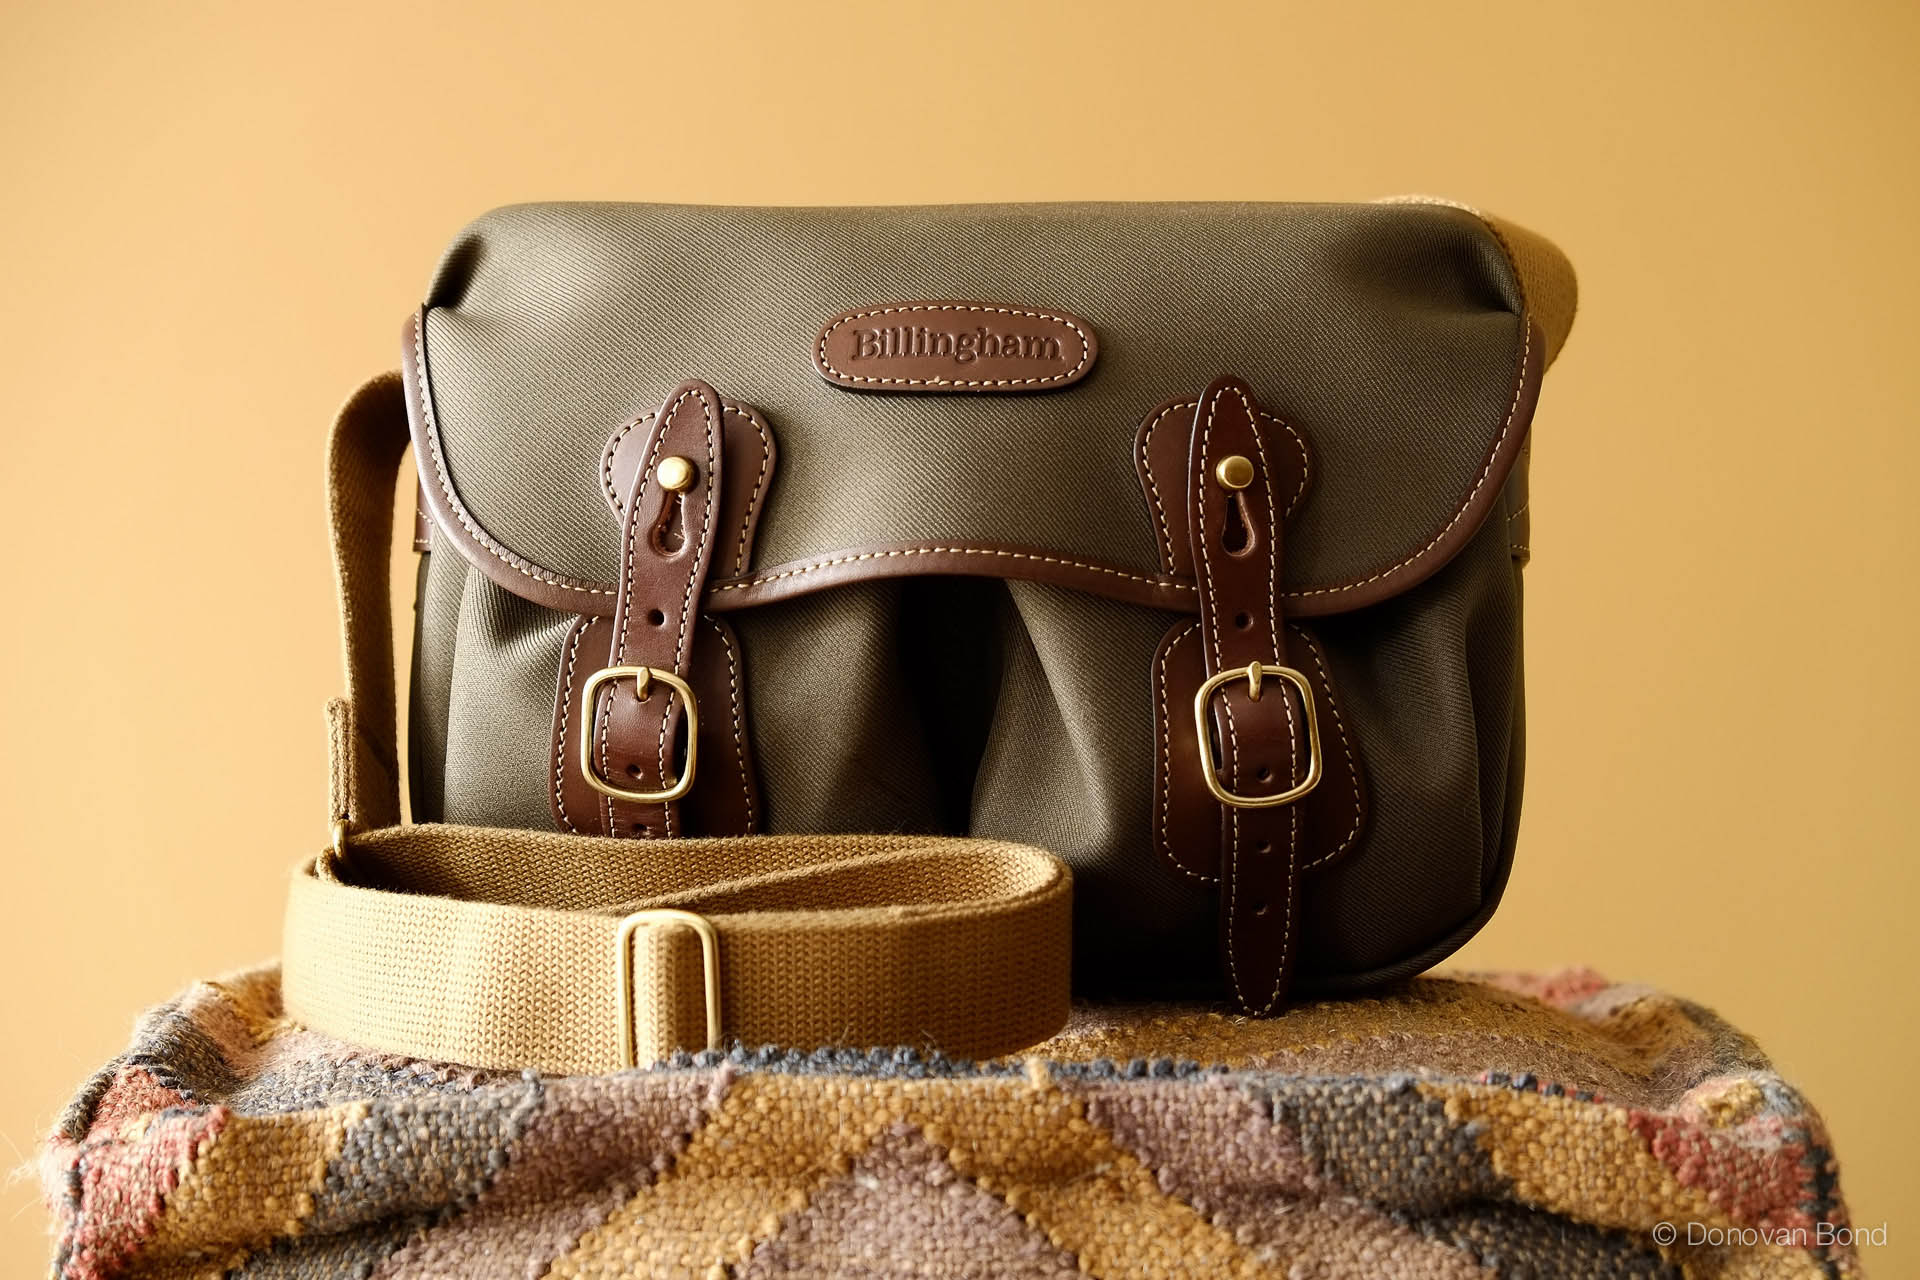 95385e164a44c The Billingham Hadley Small in Sage FibreNyte, Chocolate leather, and brass  fittings.